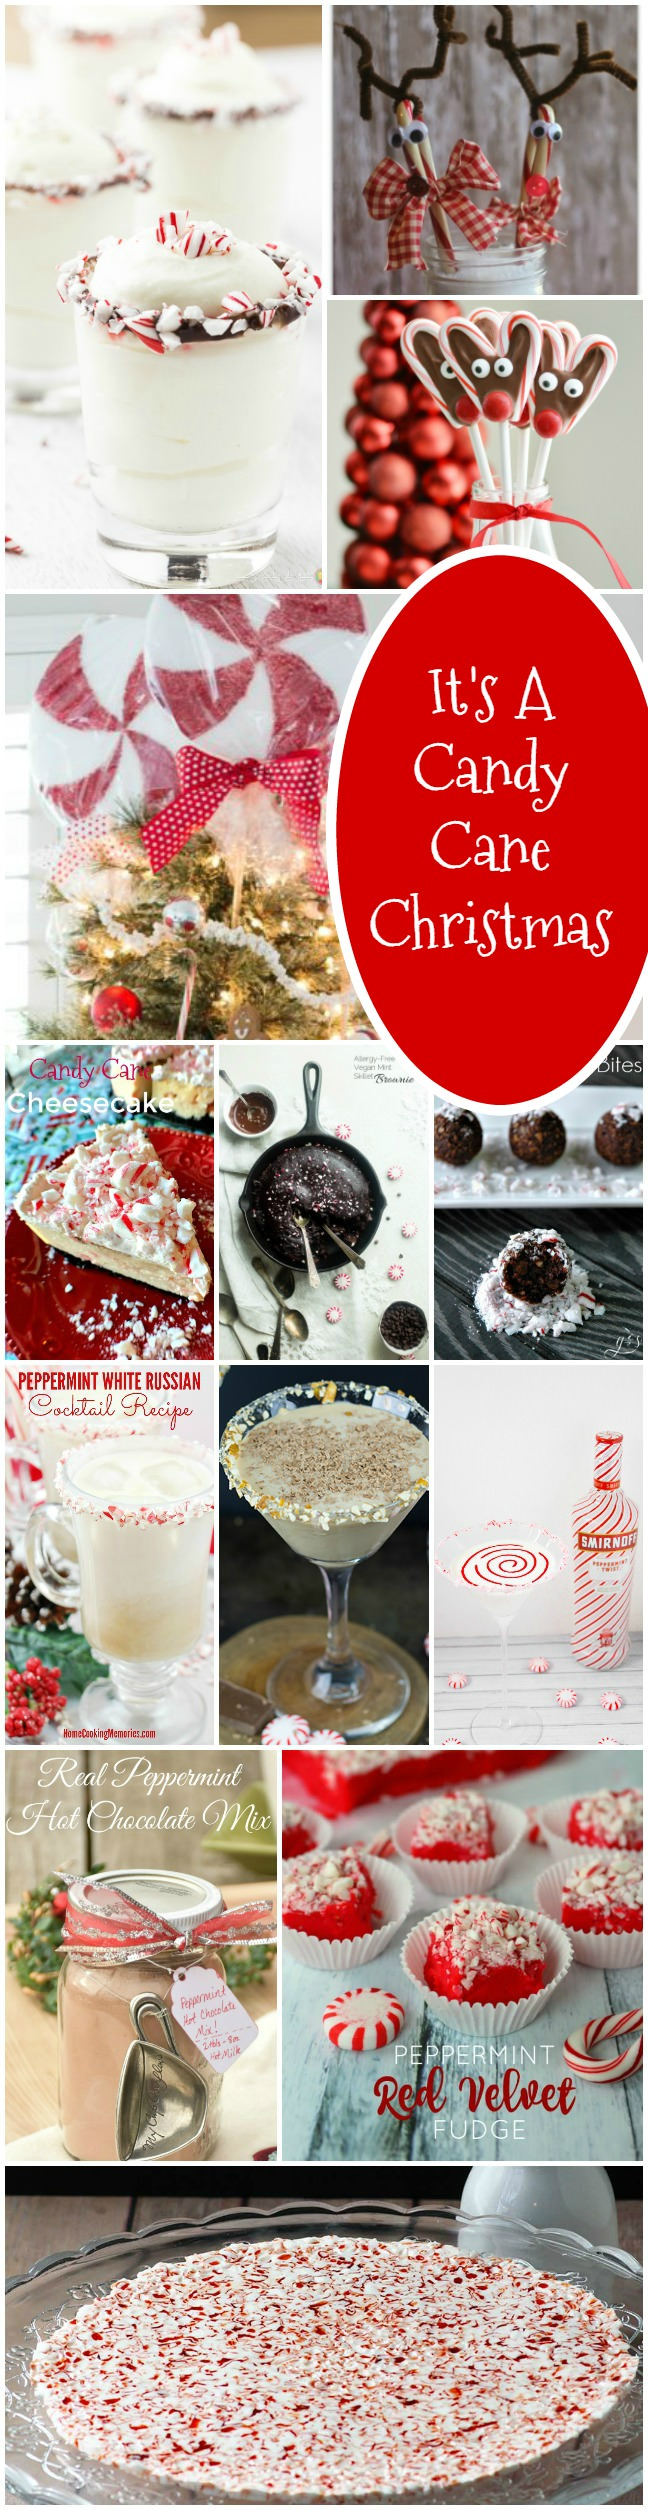 Enjoy the sweet taste of winter with this Candy Cane Christmas Collection! Great ideas for gift giving and sharing with friends.